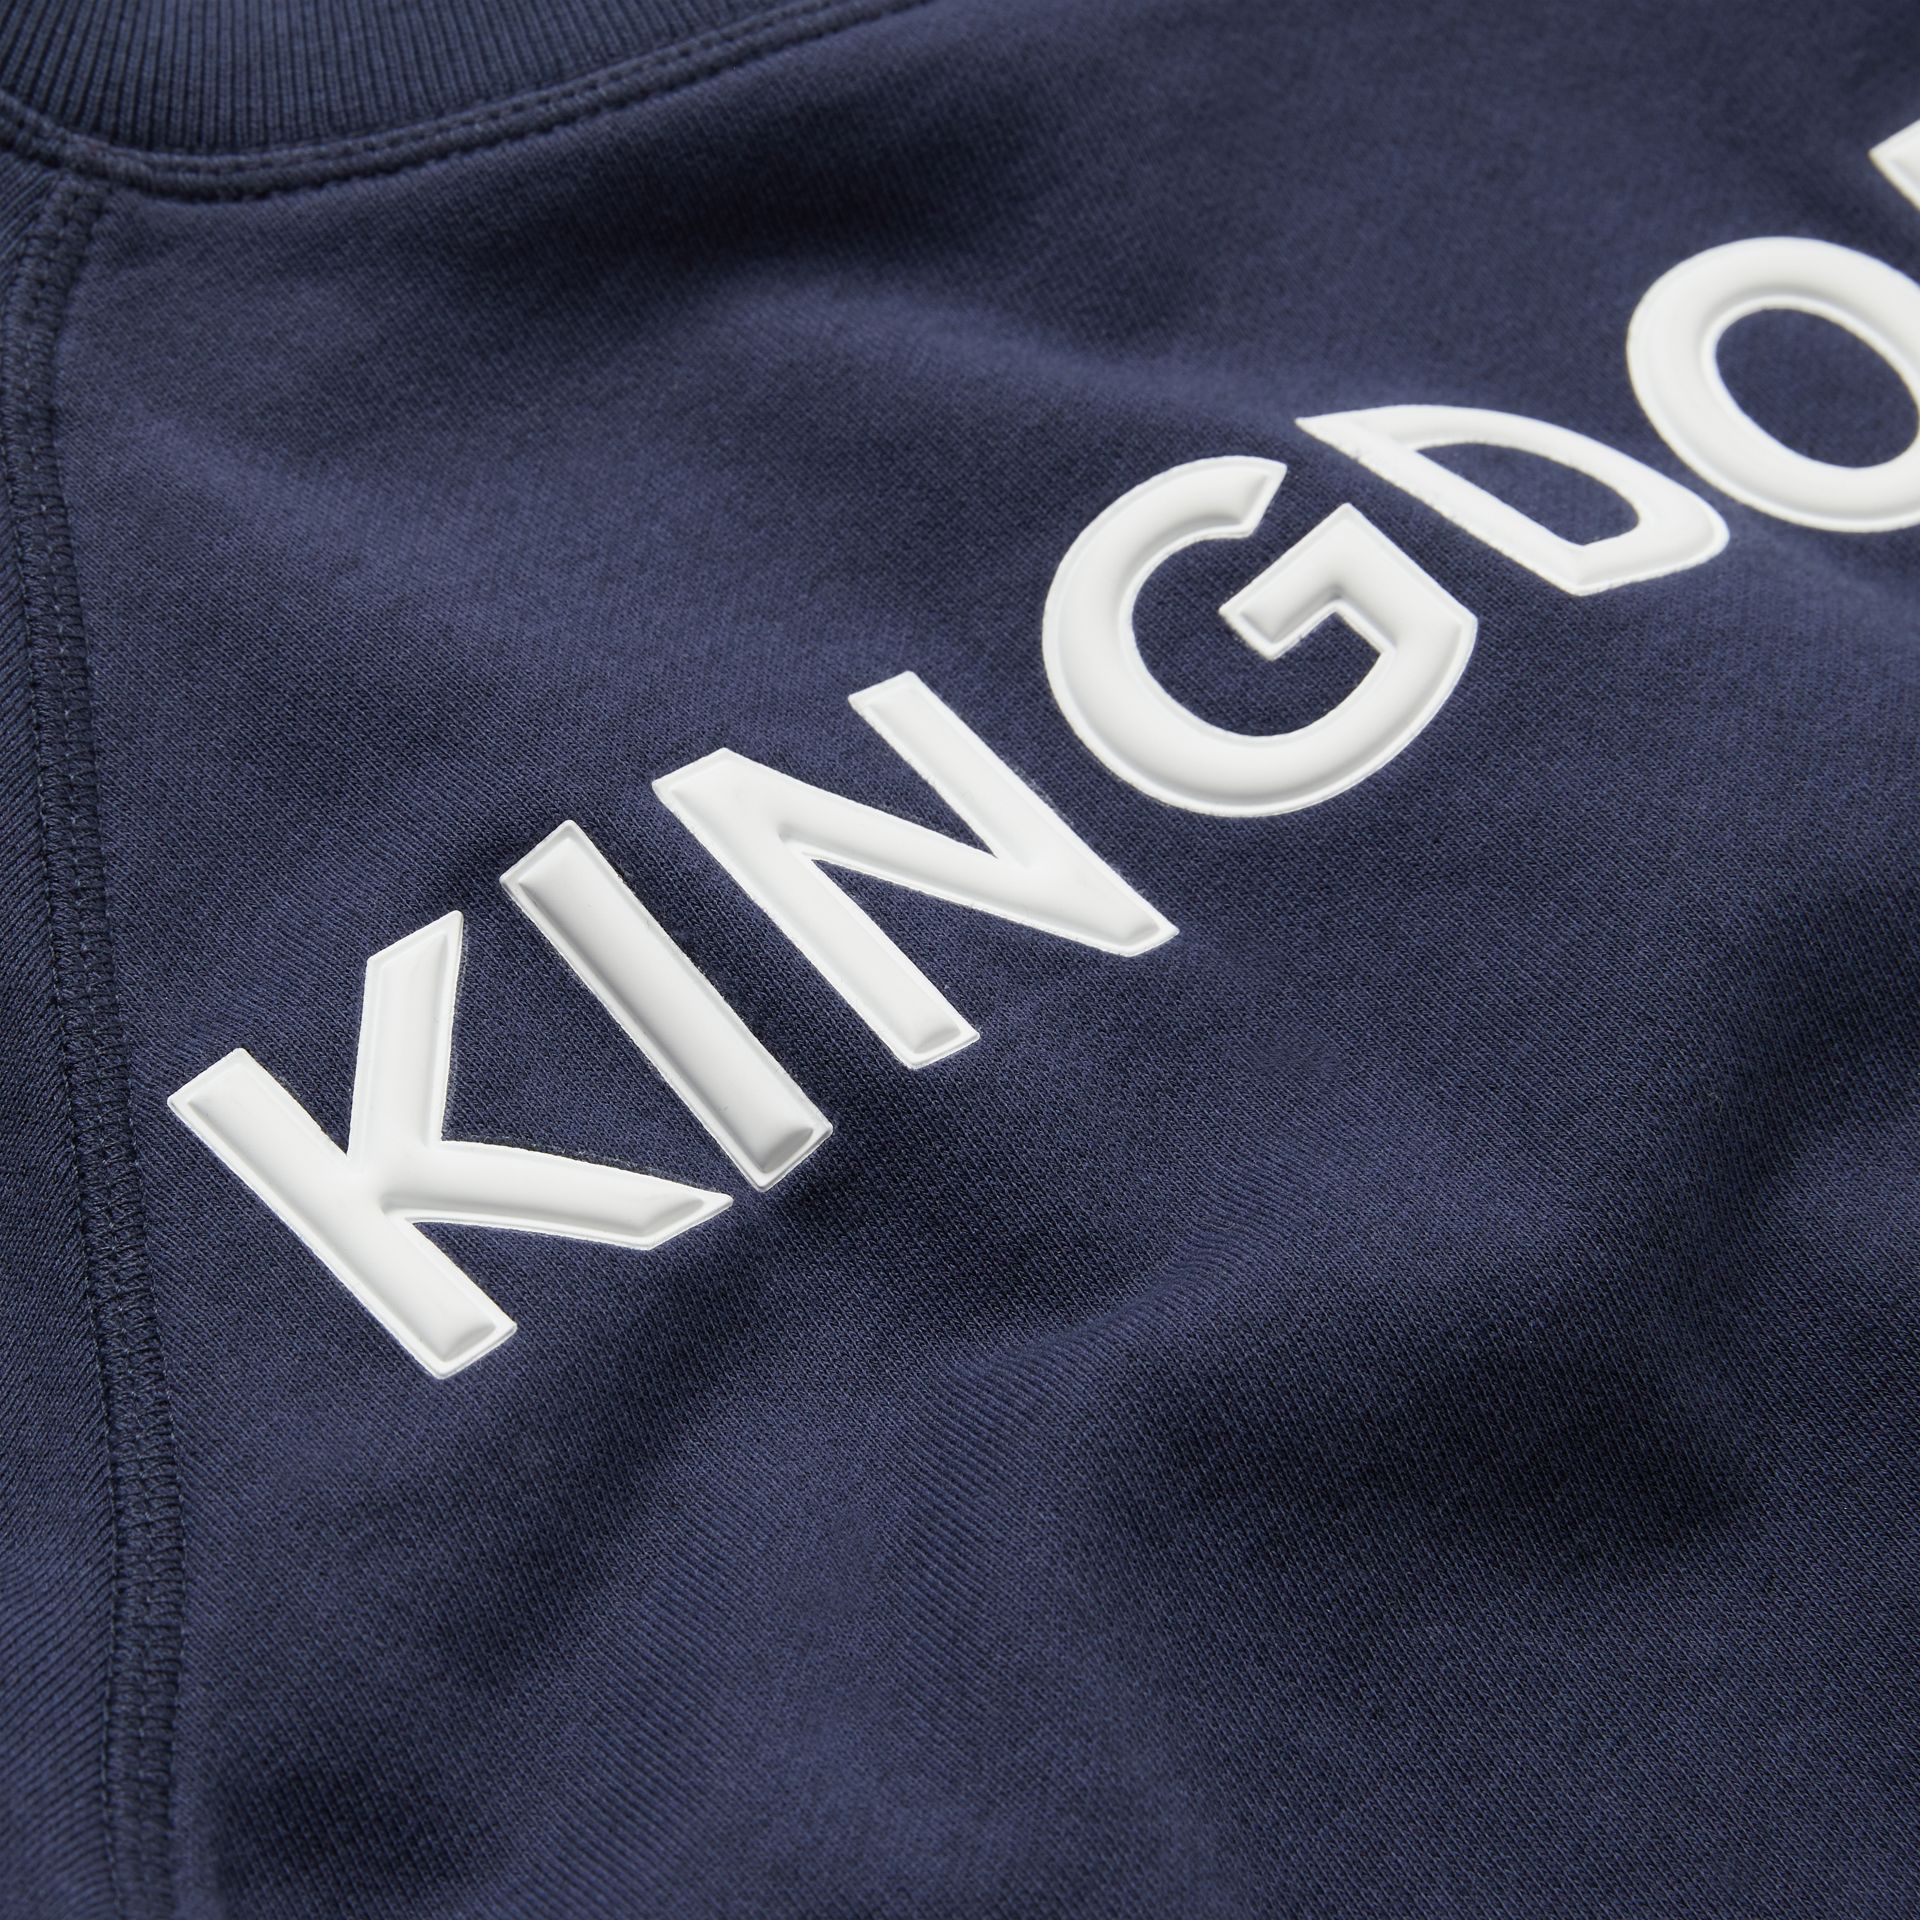 Kingdom Motif Cotton Sweatshirt in Slate Blue Melange | Burberry Hong Kong - gallery image 1